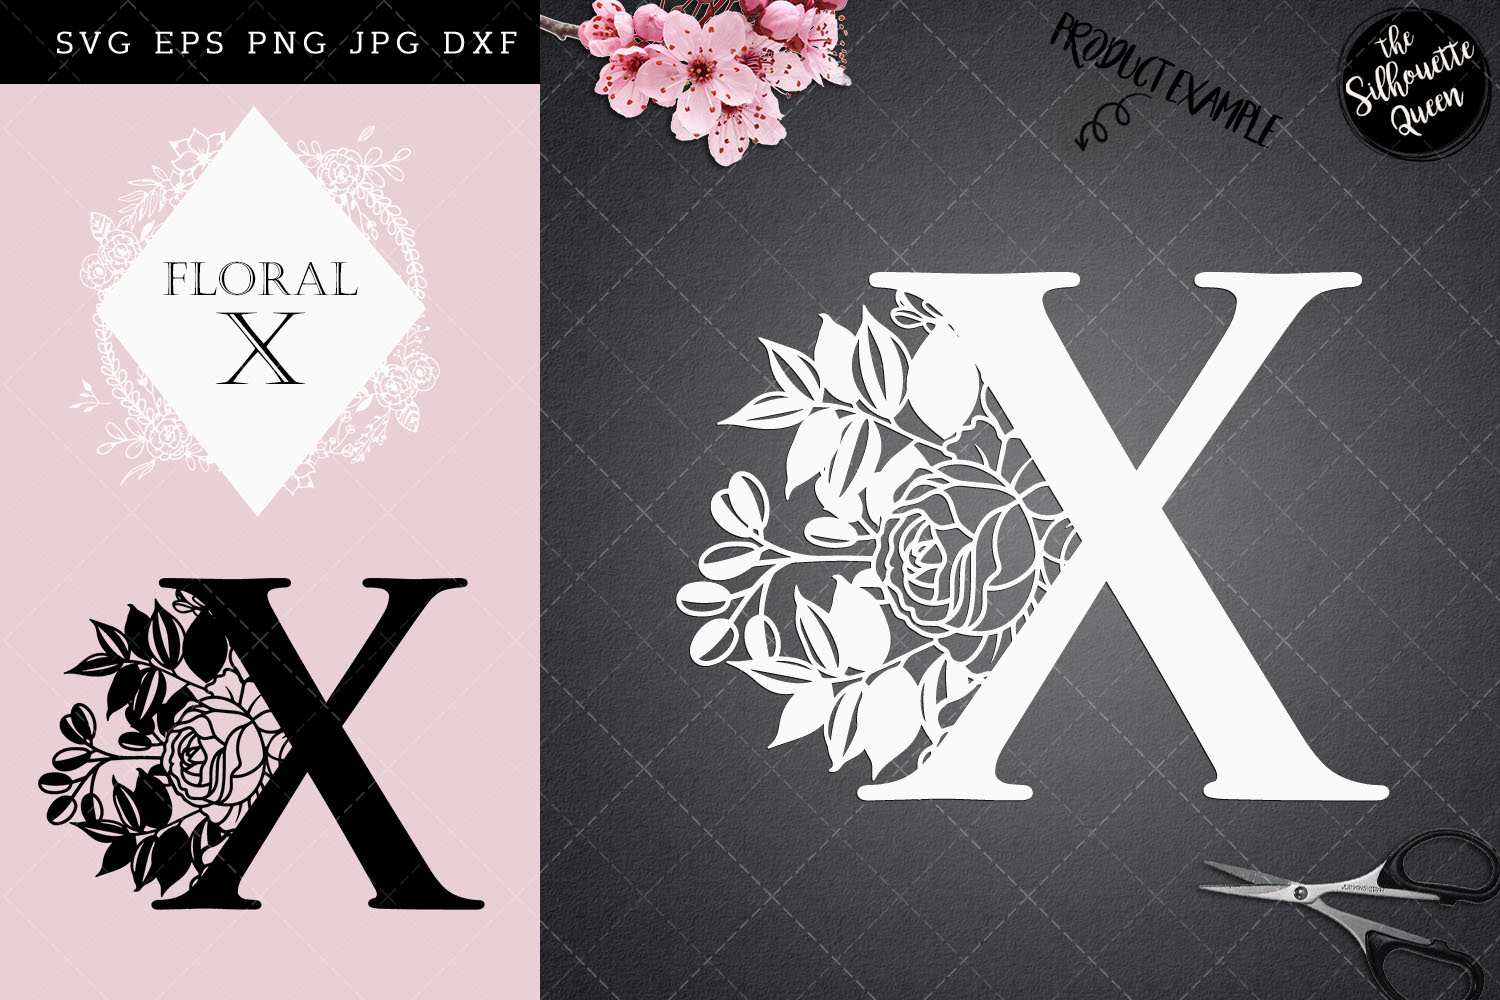 Download Free X Floral Letter Design Graphic By Thesilhouettequeenshop for Cricut Explore, Silhouette and other cutting machines.